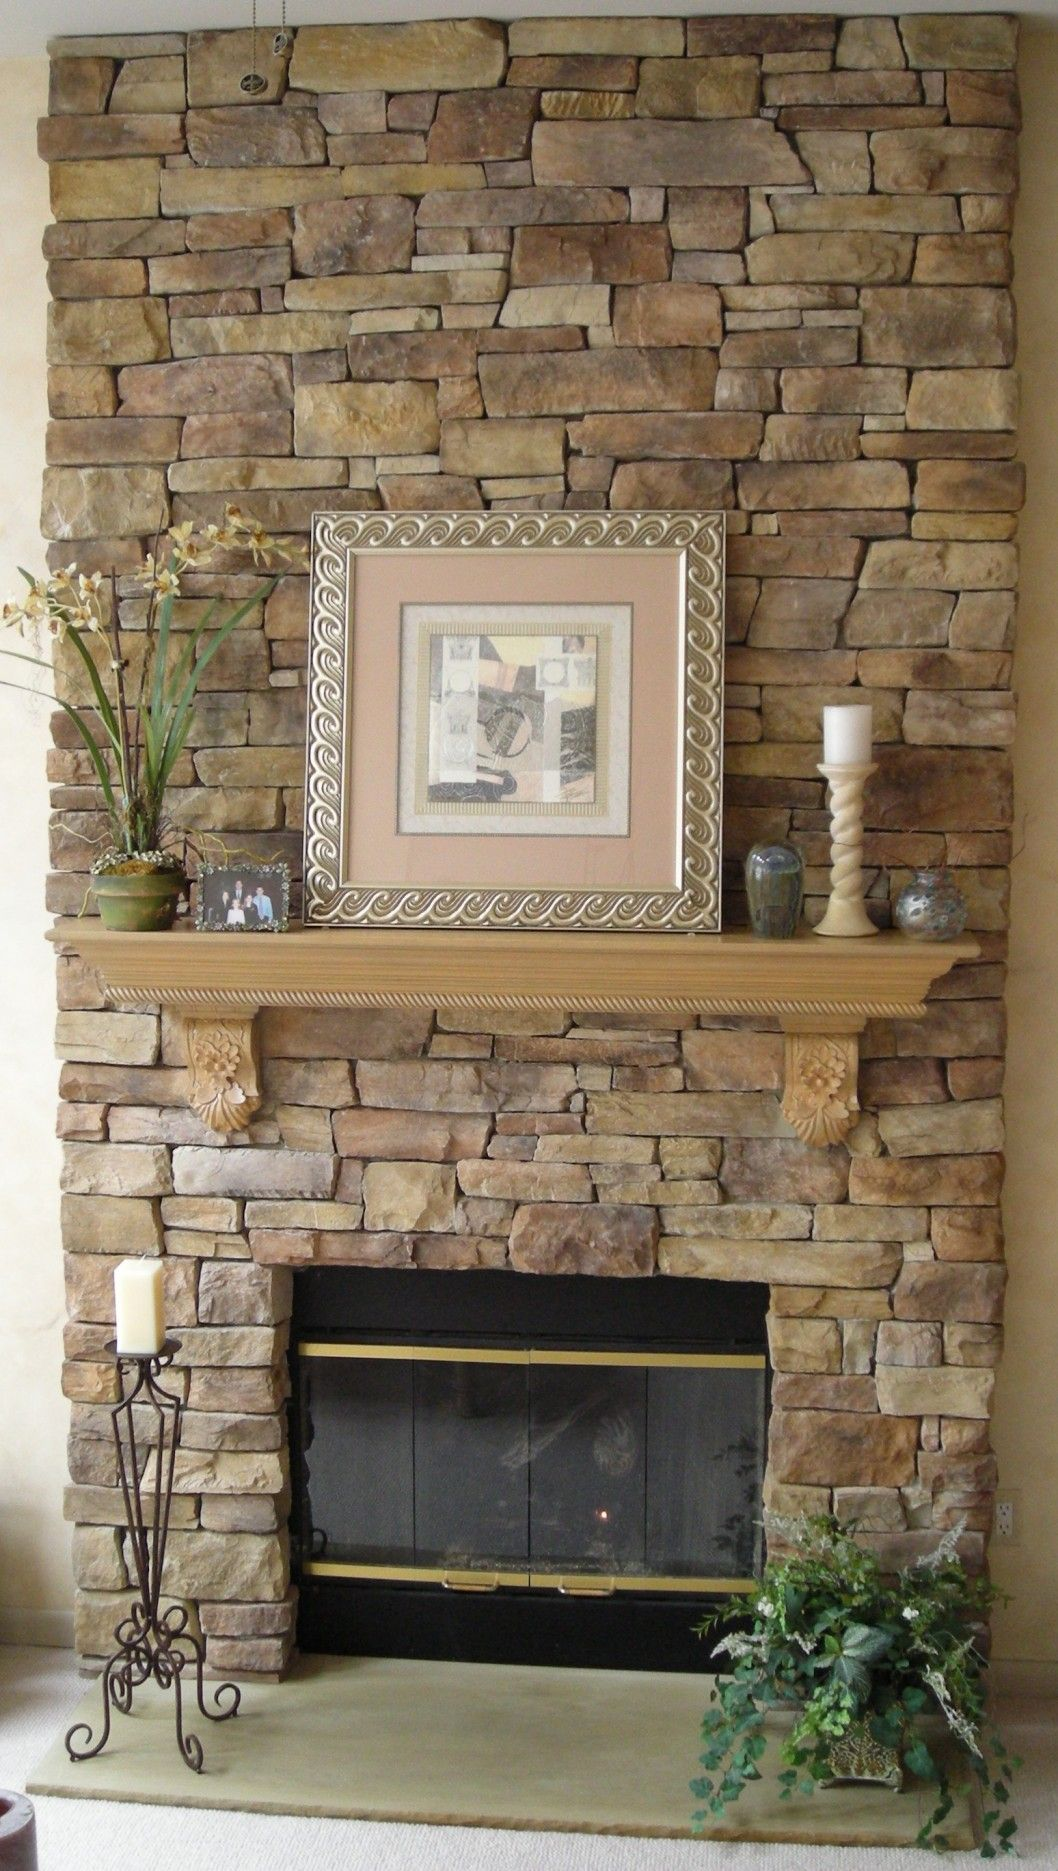 Fireplace Stone Wall Decoration Ideas For Modern Home Design Interior : Fireplace  Stone Ideas Brick Veneer Corner Gas Fireplace Stone Outdoor Fireplace ...